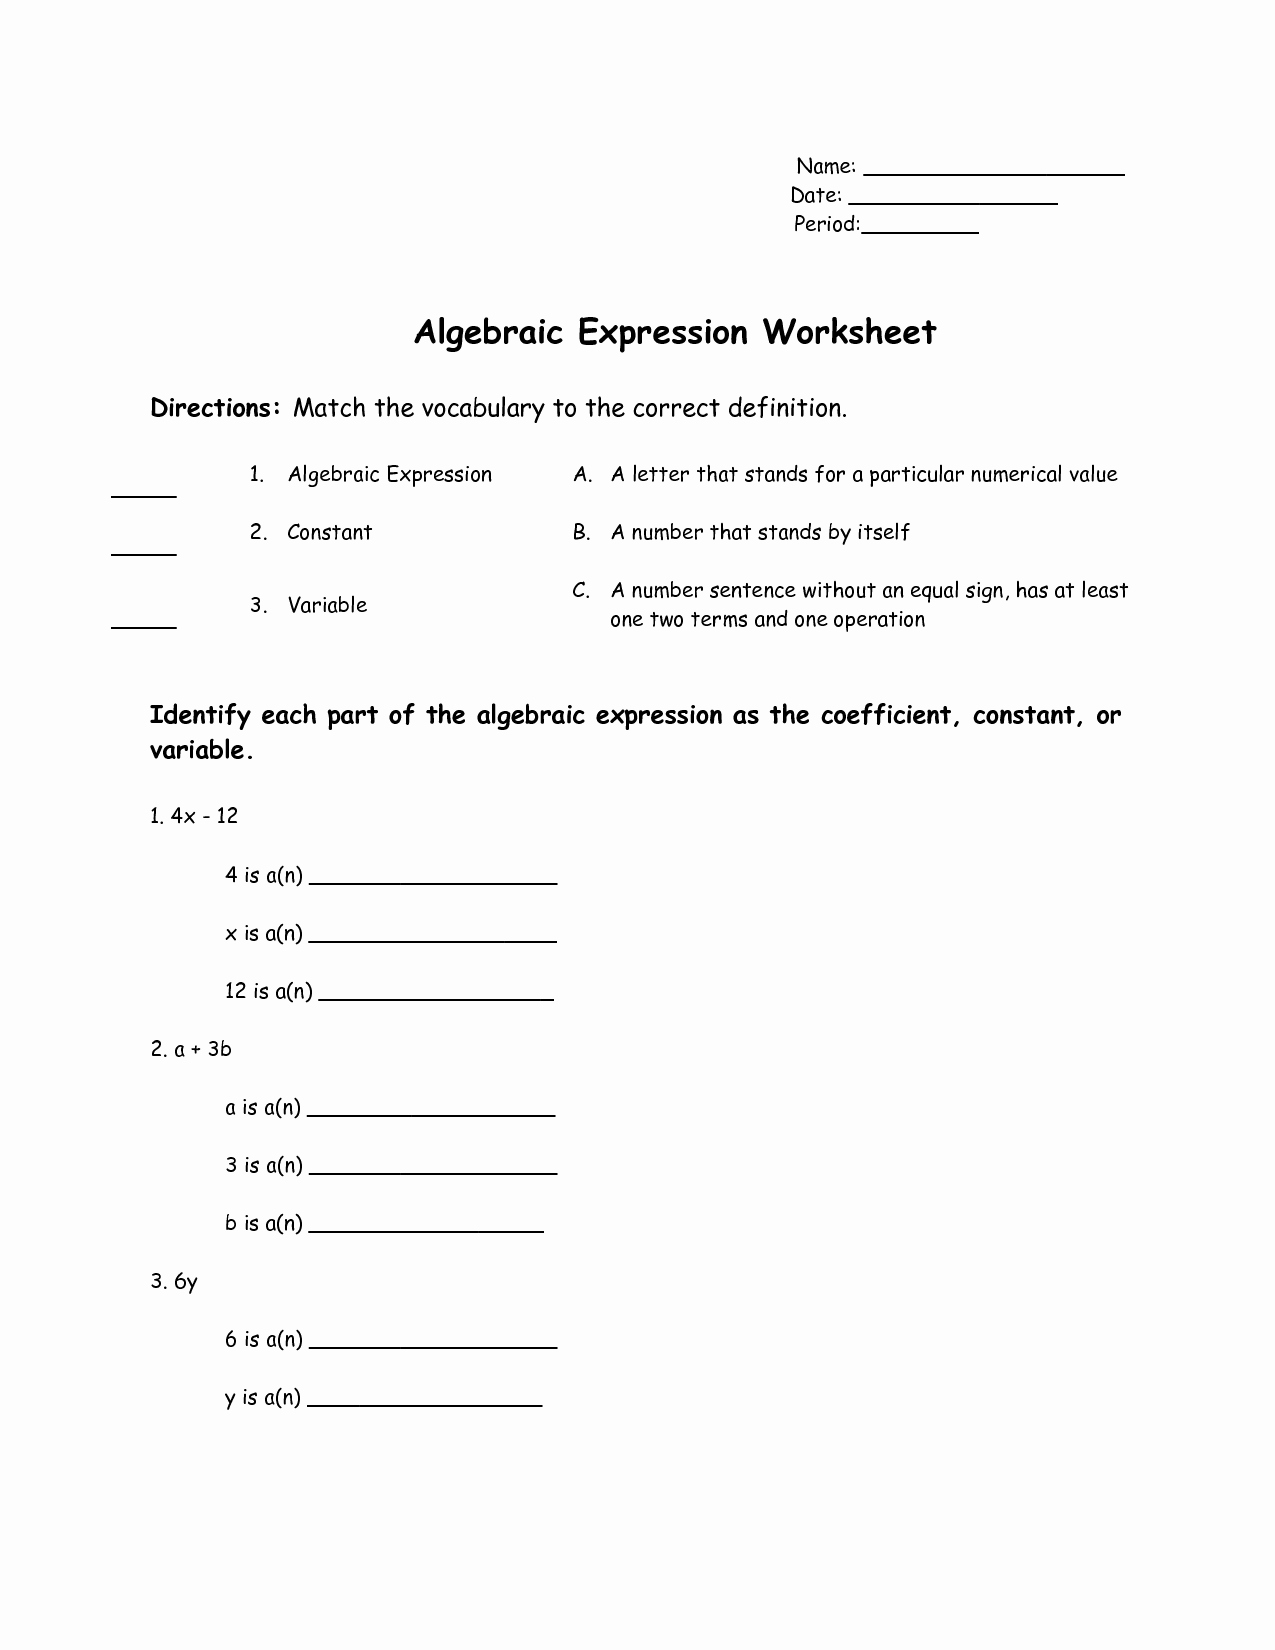 Translating Algebraic Expressions Worksheet Elegant Translating Verbal Sentences Into Equations Worksheet